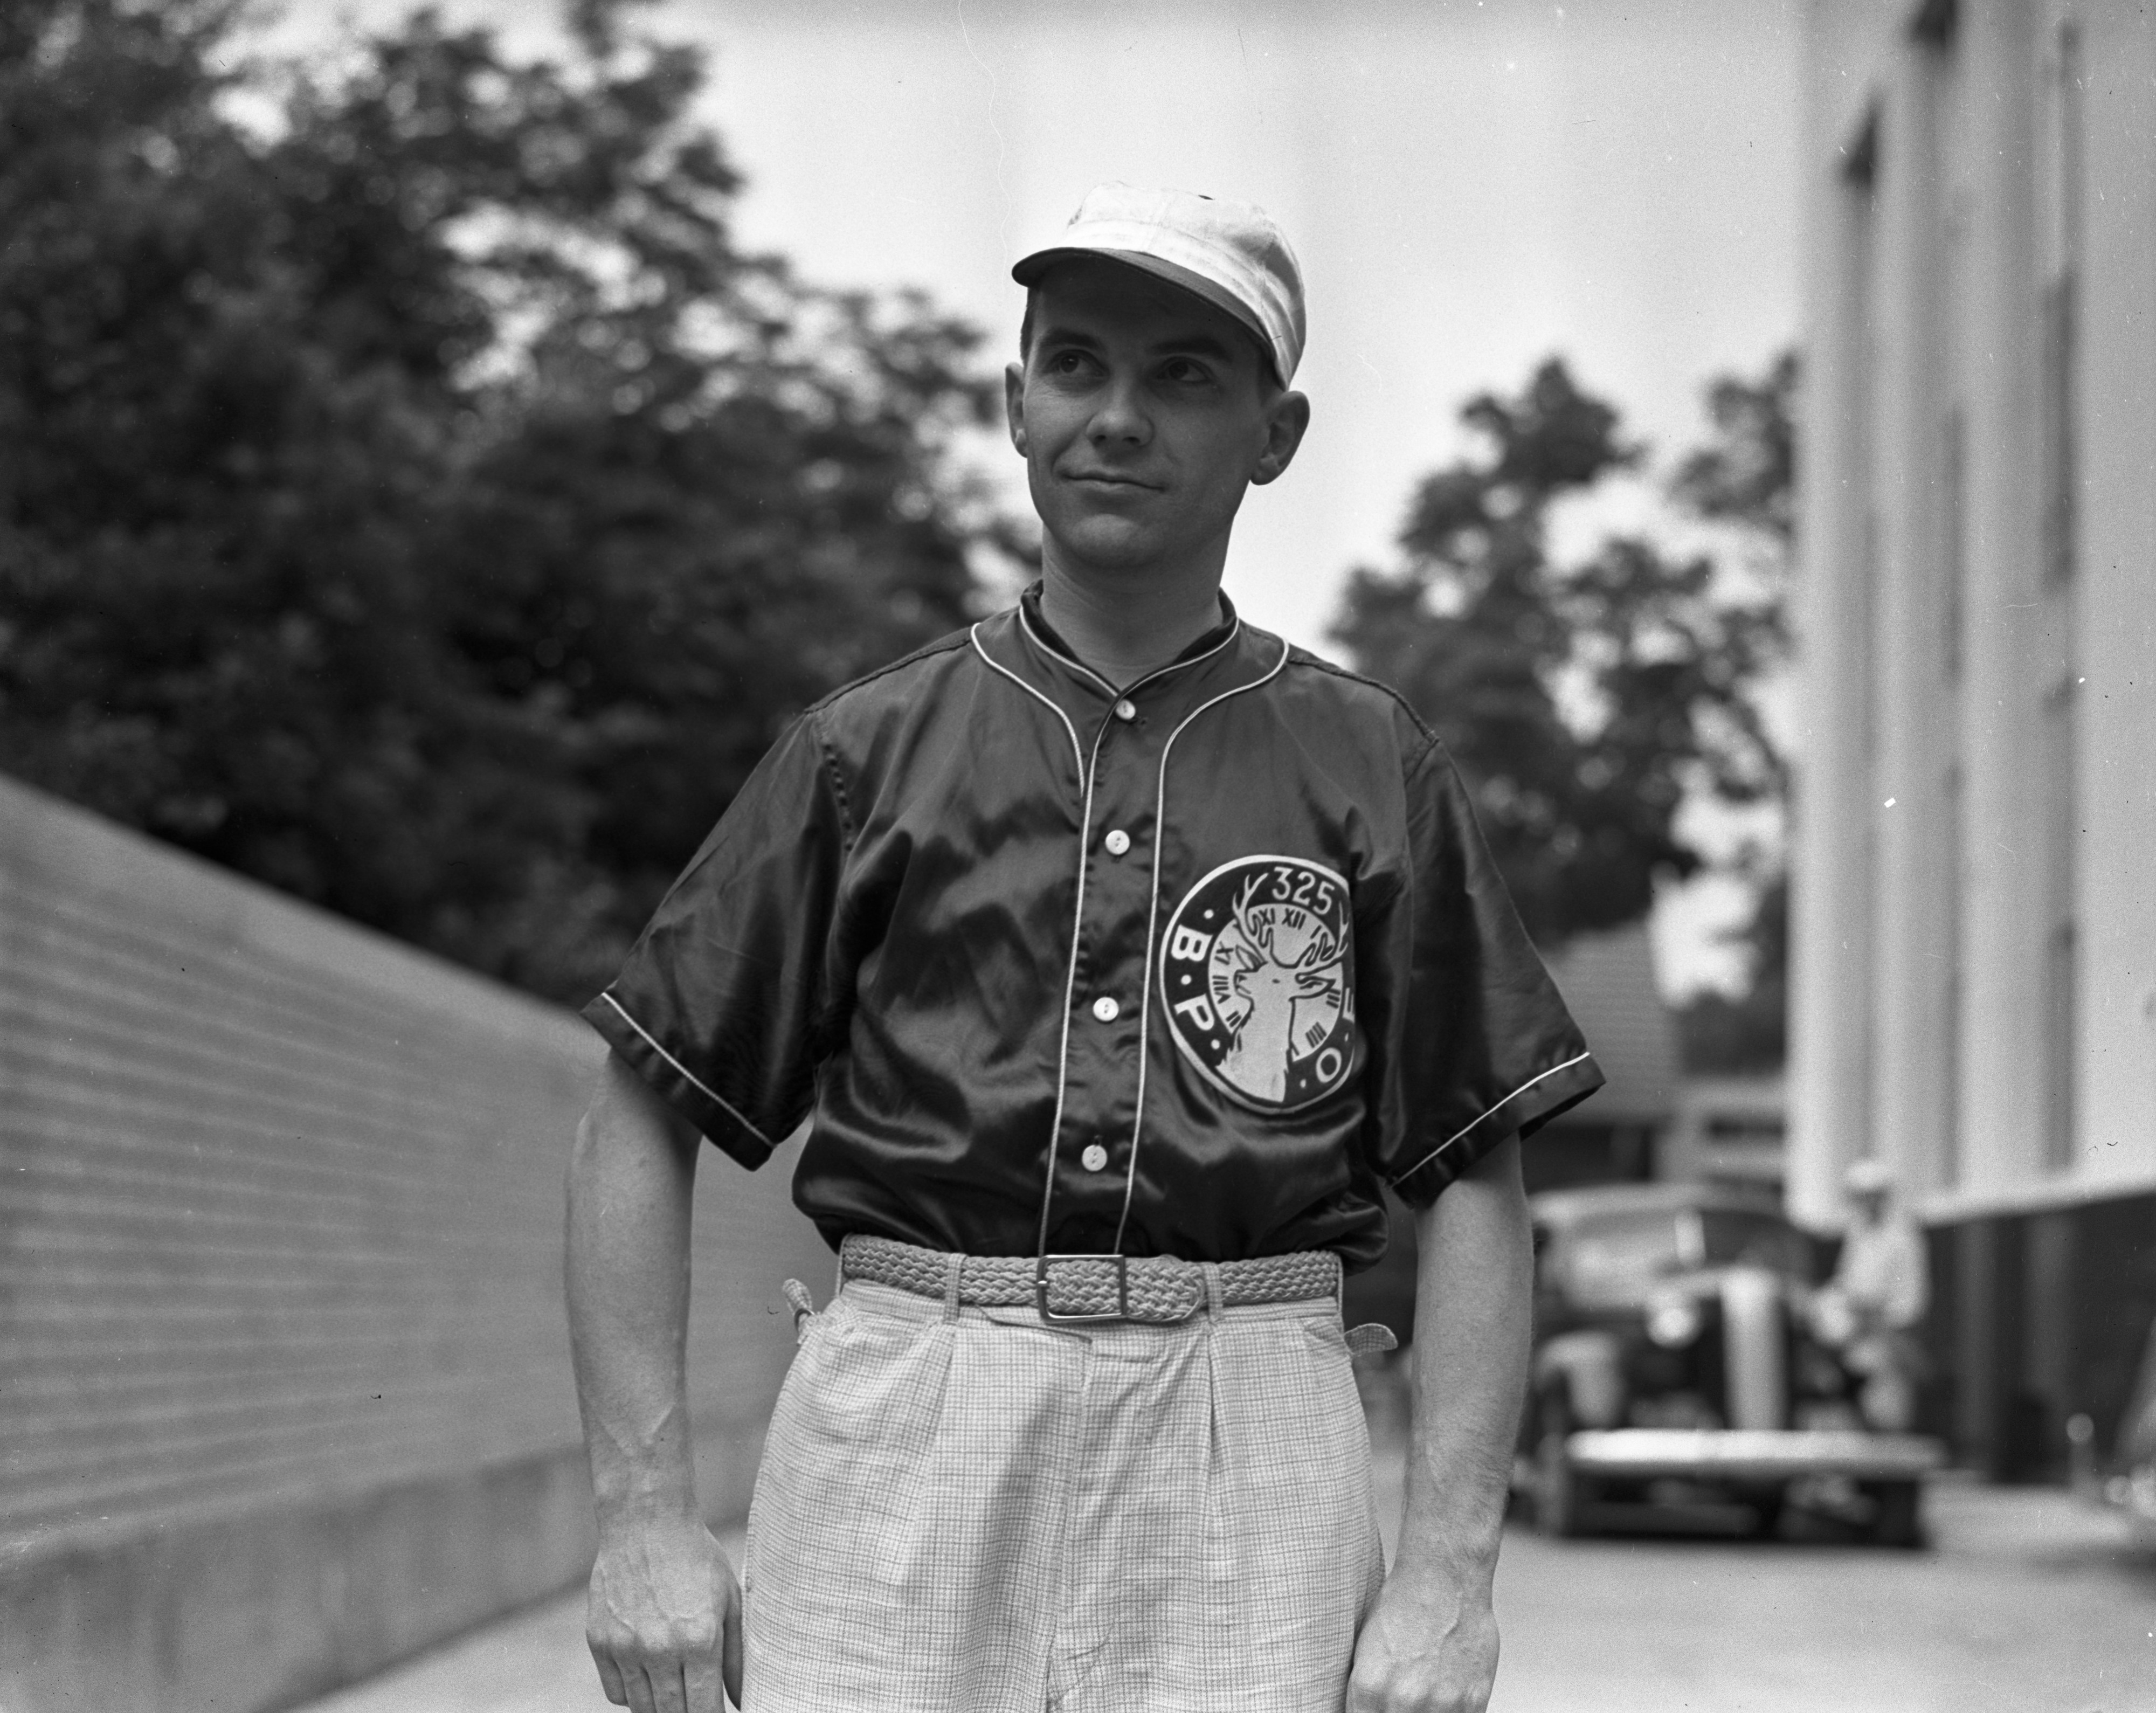 Earl Bradshaw of the Elk's Softball Team, and an Ann Arbor City All-Star, September 1937 image